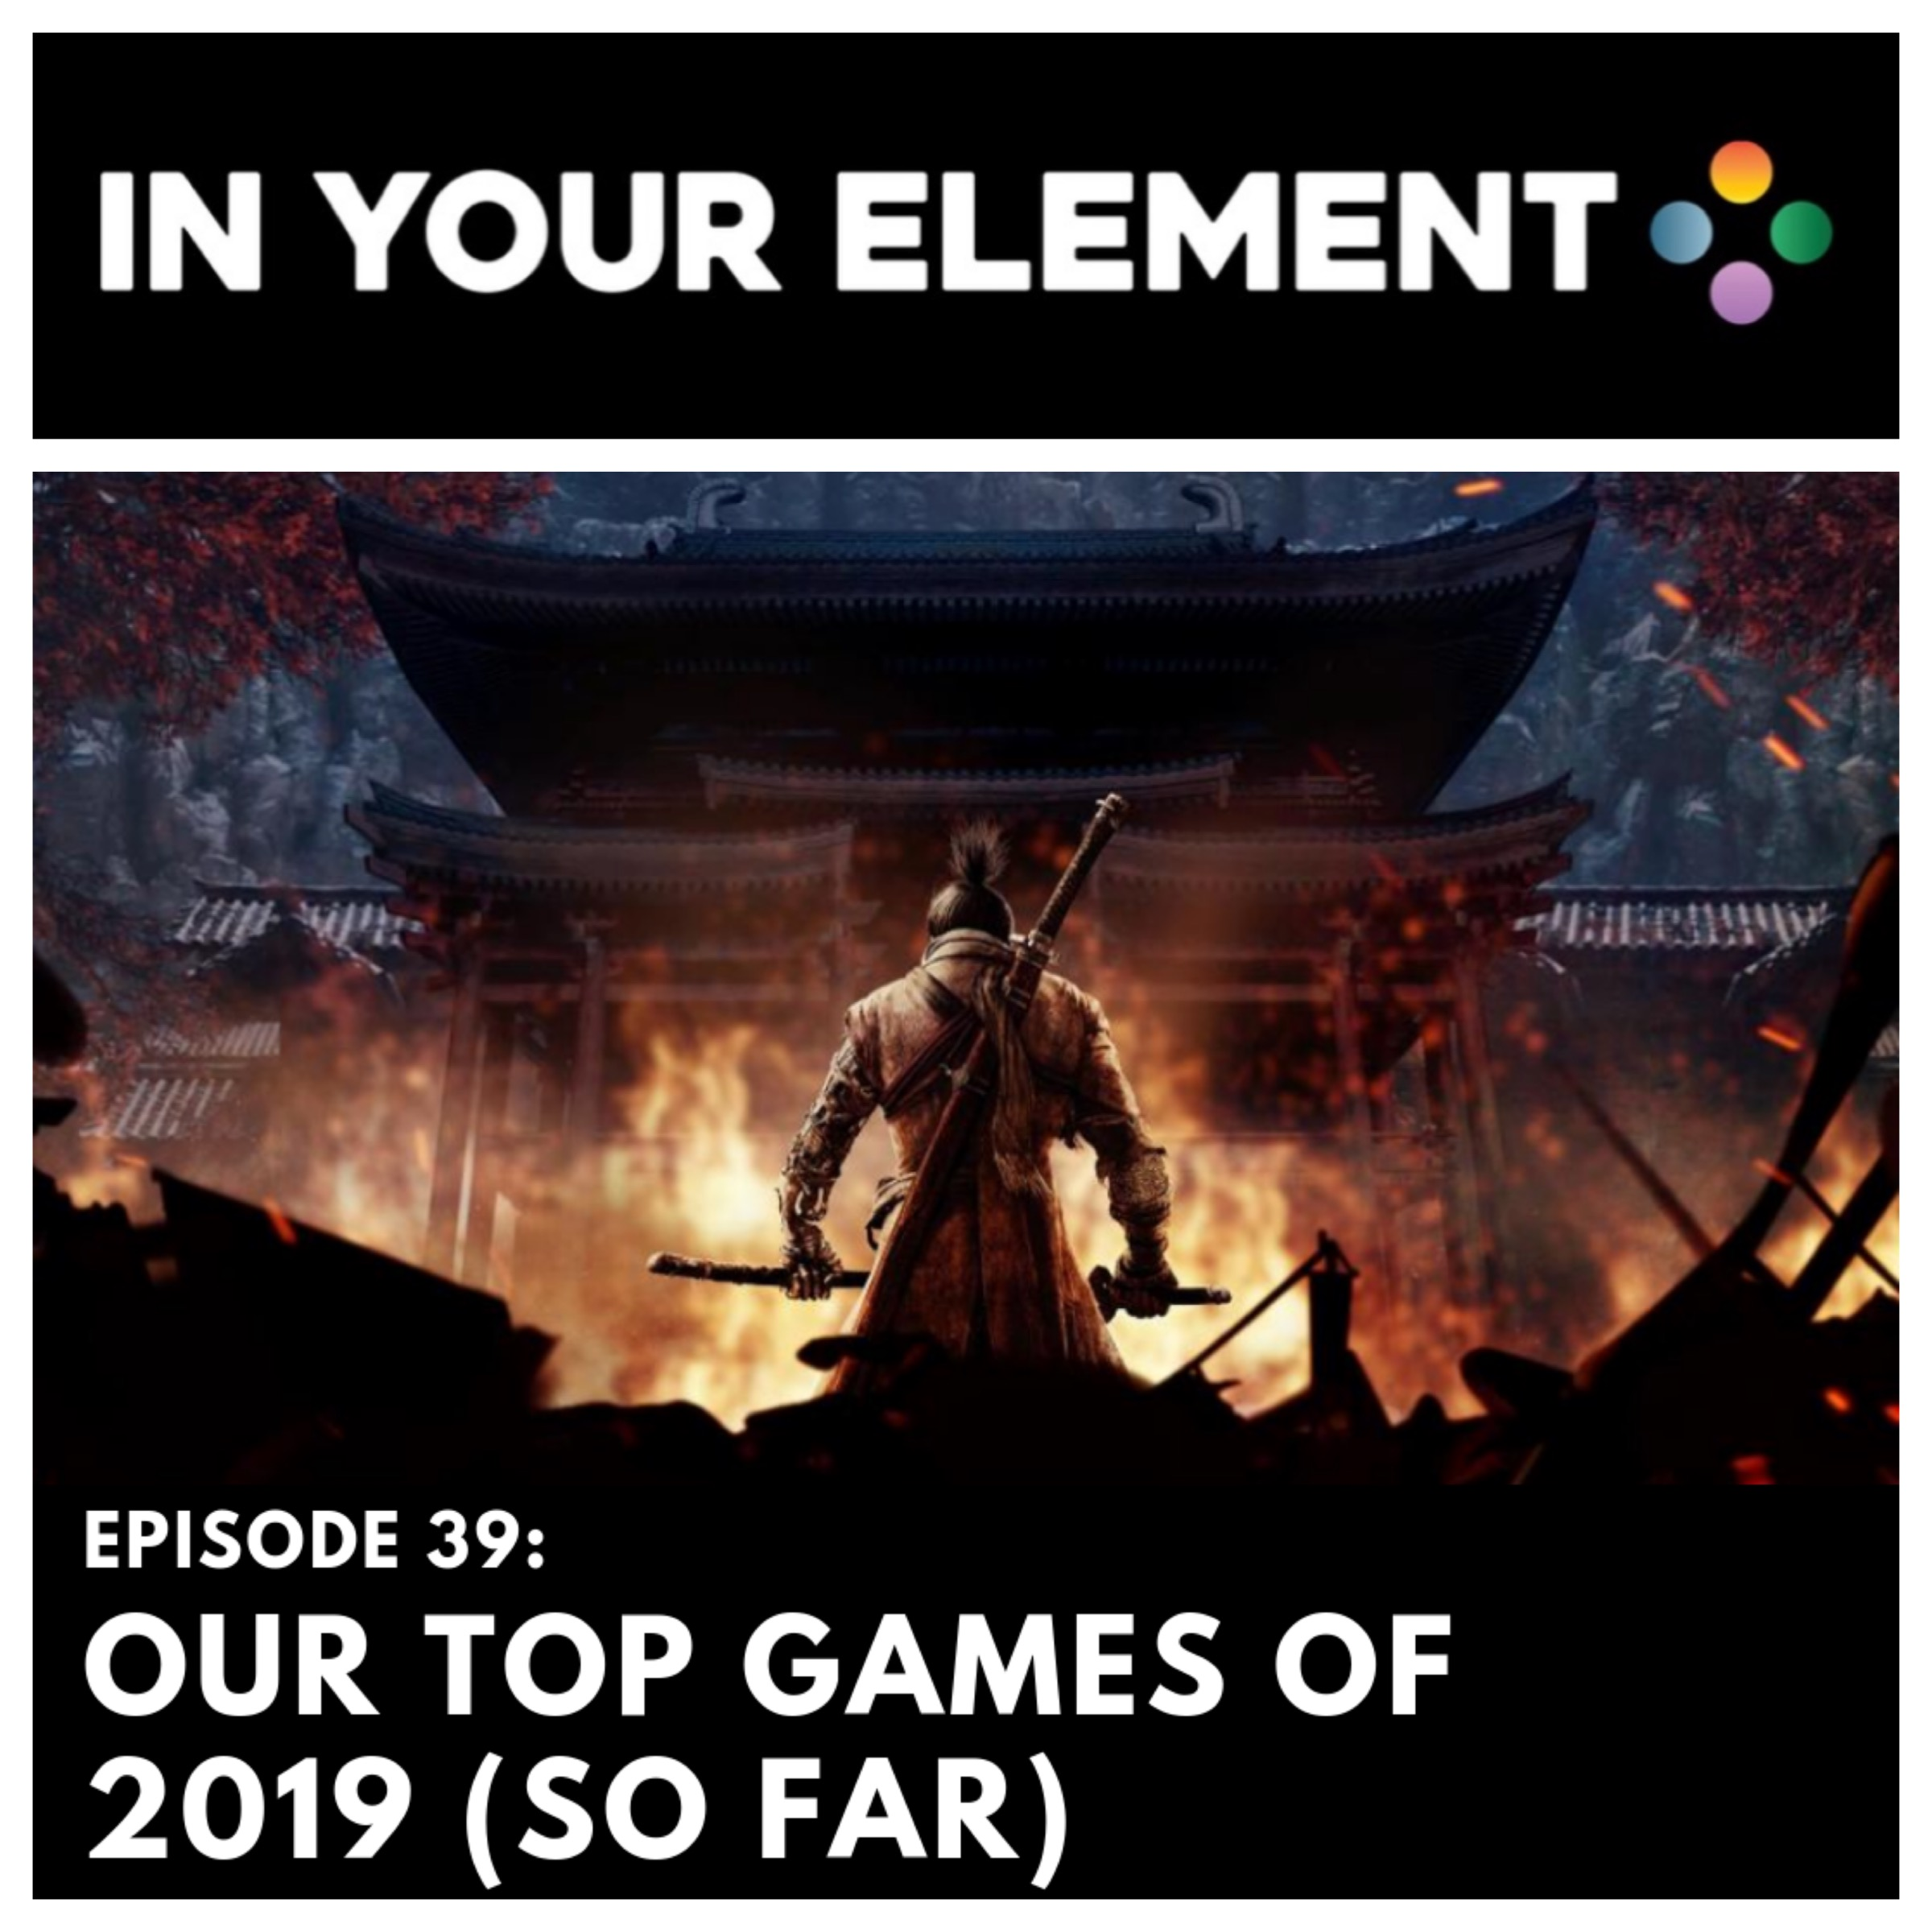 In Your Element Episode 39: Our Top Games of 2019 (So Far)